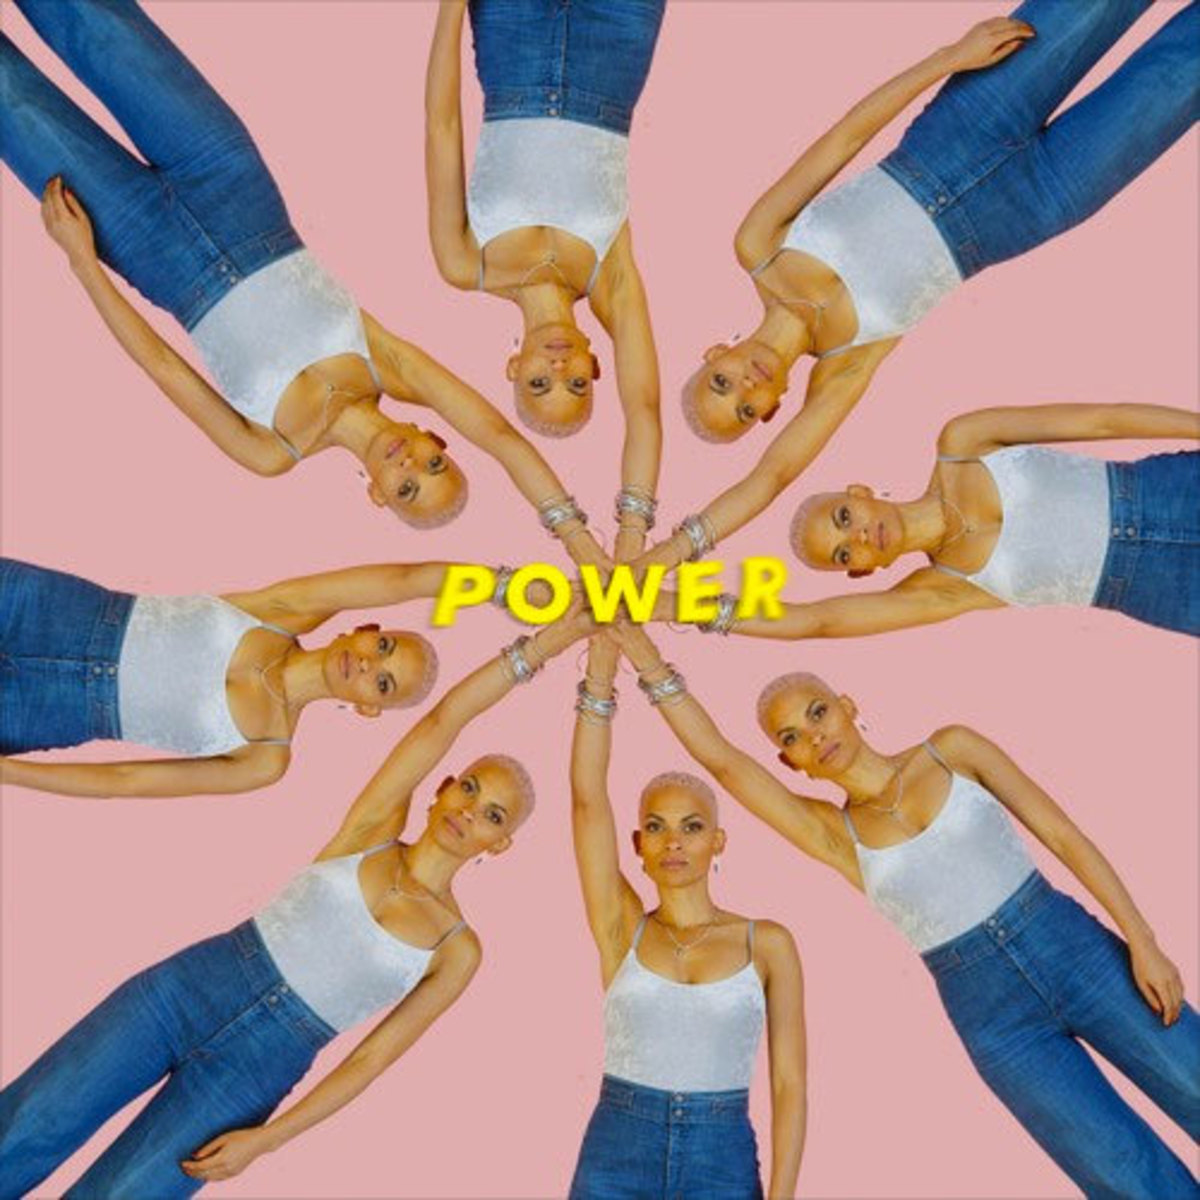 goapele-power.jpg